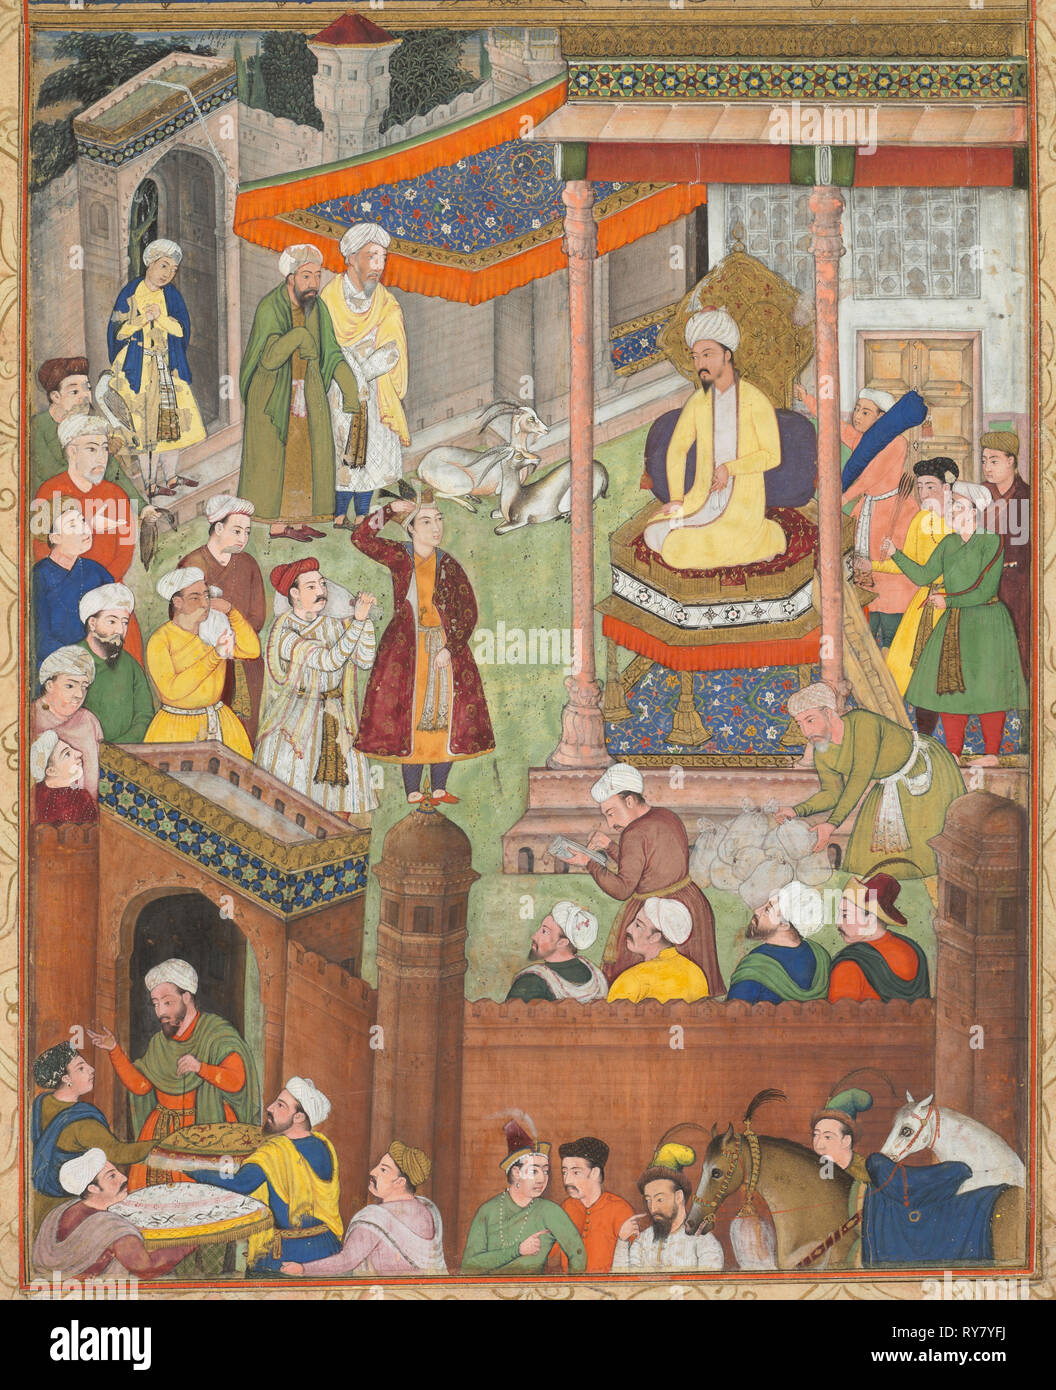 Babur receives booty and Humayun's salute after the victory over Sultan Ibrahim in 1526, from an Akbar-nama (Book of Akbar) of Abu'l Fazl (Indian, 1551–1602), c. 1596-1597 or 1604. India, Mughal court, made for Emperor Akbar. Opaque watercolor on paper, mounted on an album page with borders of gold-decorated cream paper; page: 42 x 27.6 cm (16 9/16 x 10 7/8 in - Stock Image